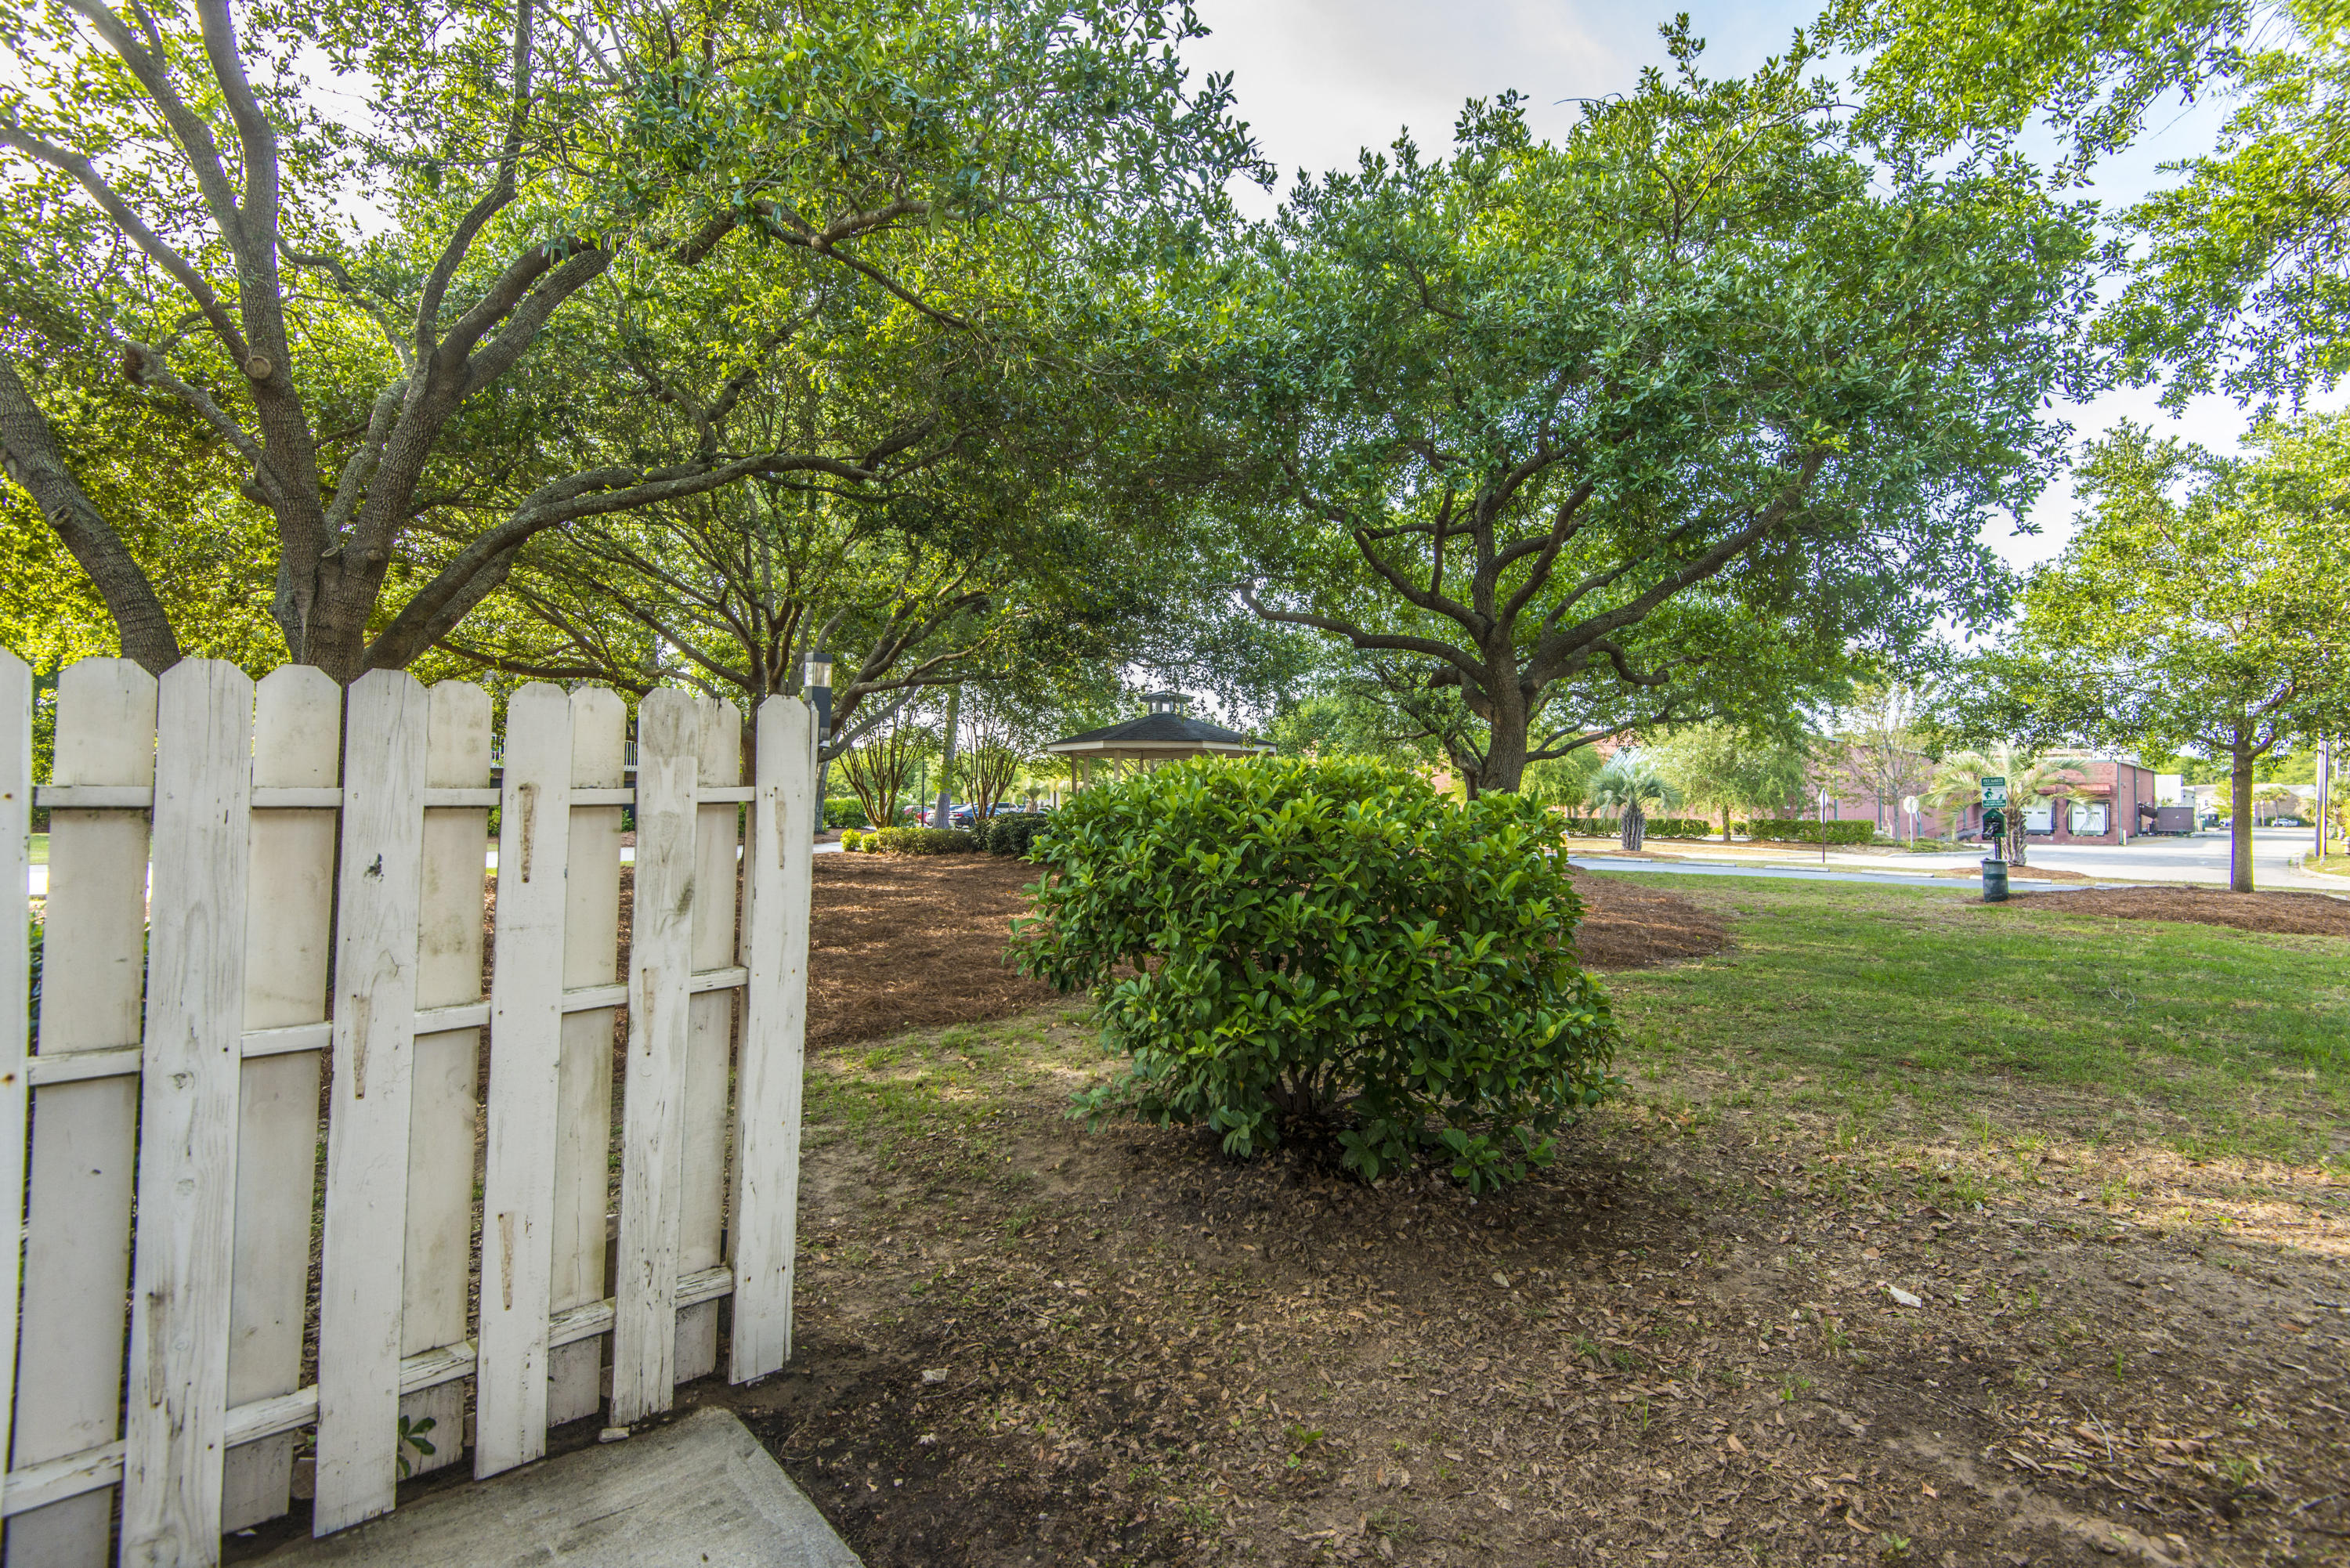 Rivers Point Row Homes For Sale - 21 Rivers Point Row, Charleston, SC - 17